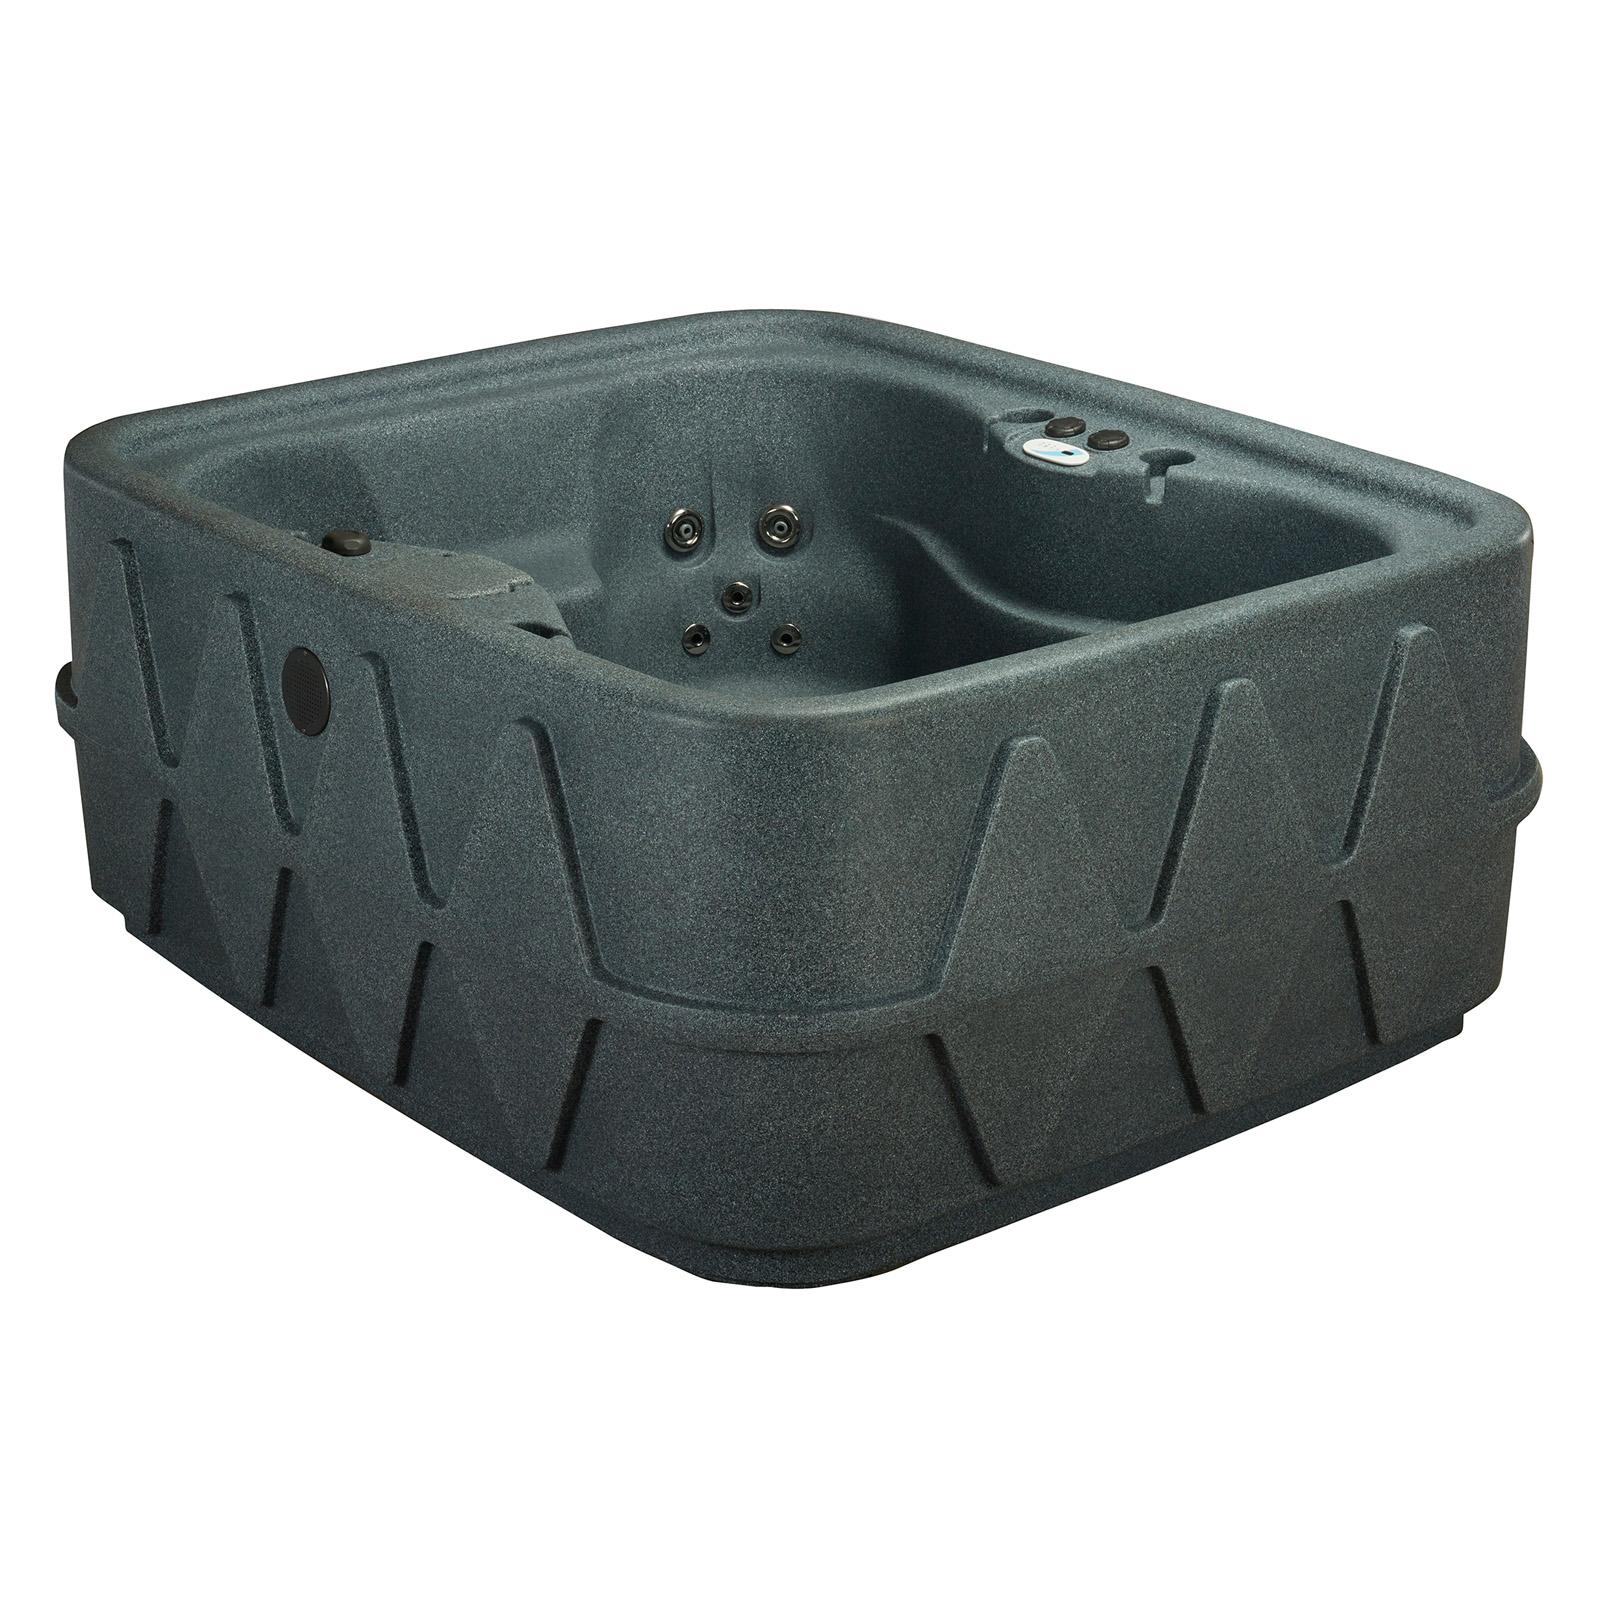 Jacuzzi jet covers | Compare Prices at Nextag